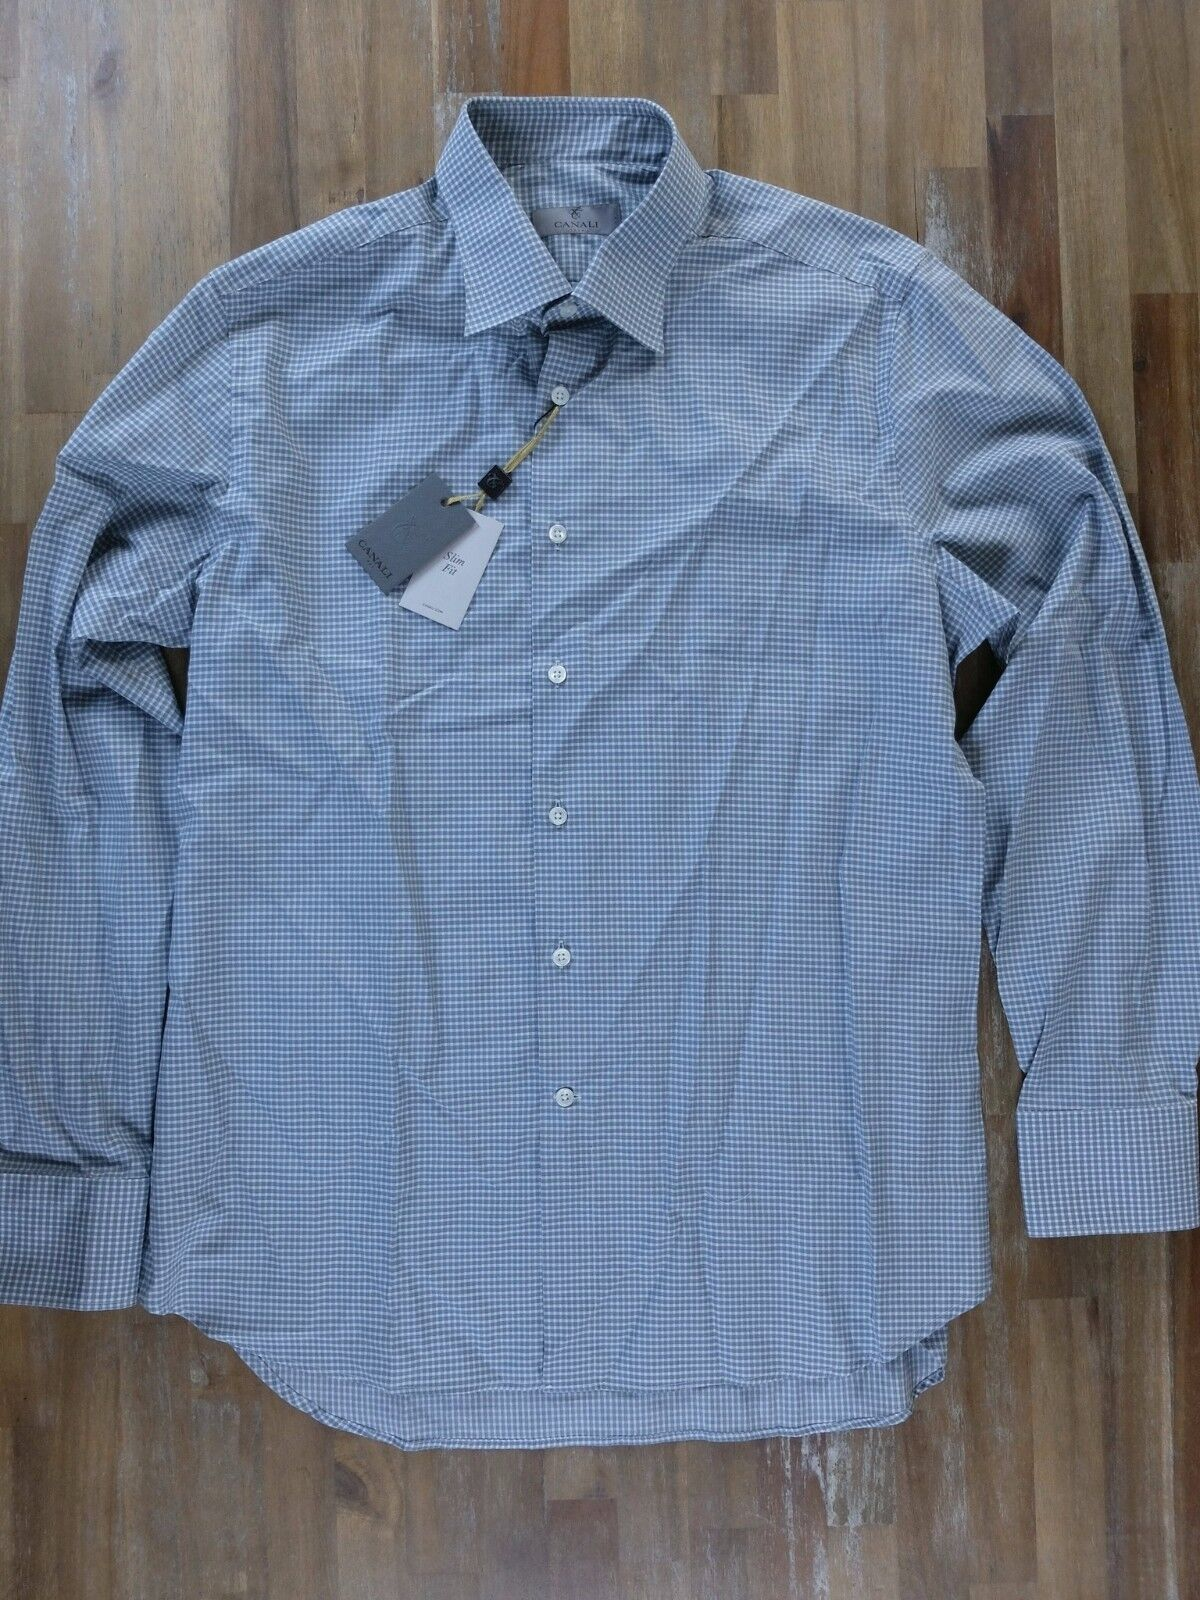 2ee8f20f5 CANALI slim-fit plaid cotton shirt authentic - 43 - NWT 17 Size ...